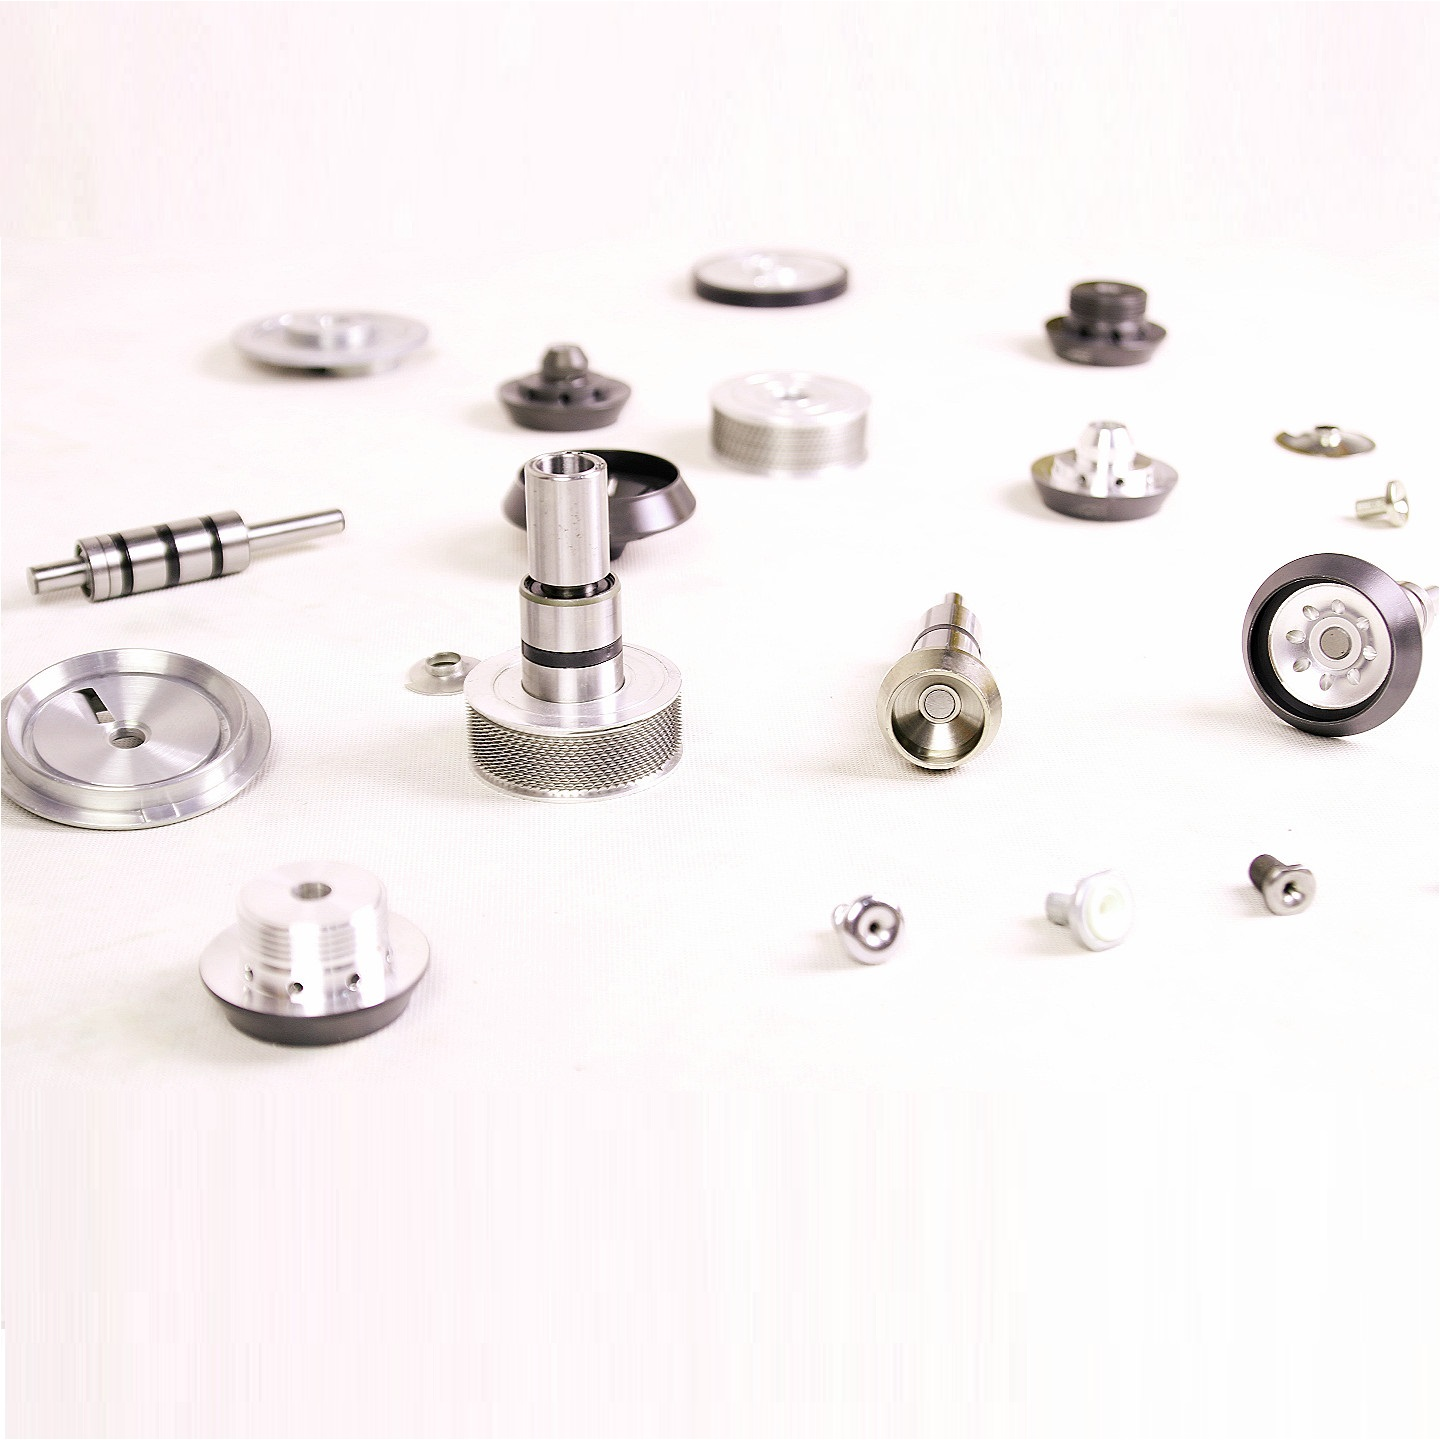 Different Open End Accessries For OE Spinning Machines Featured Image